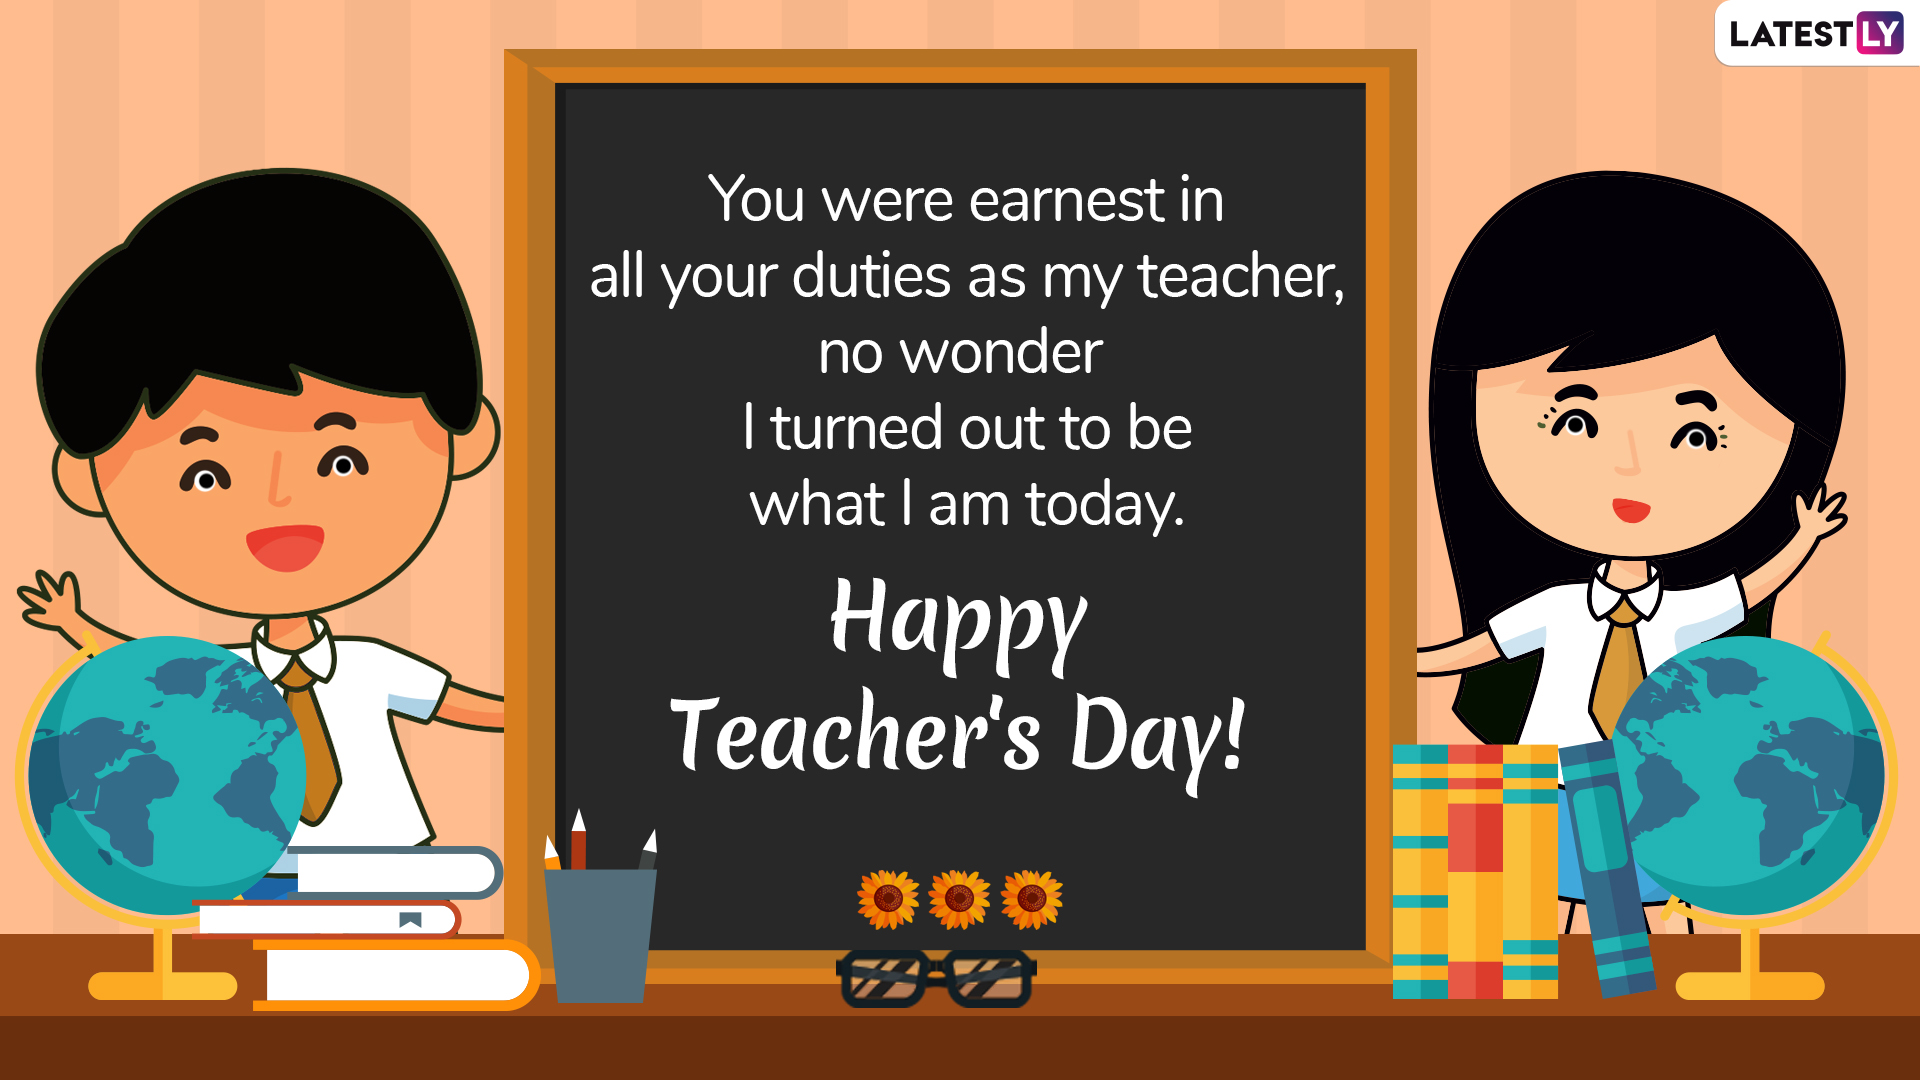 Teachers' Day 2019 Messages: WhatsApp Stickers, GIF Images